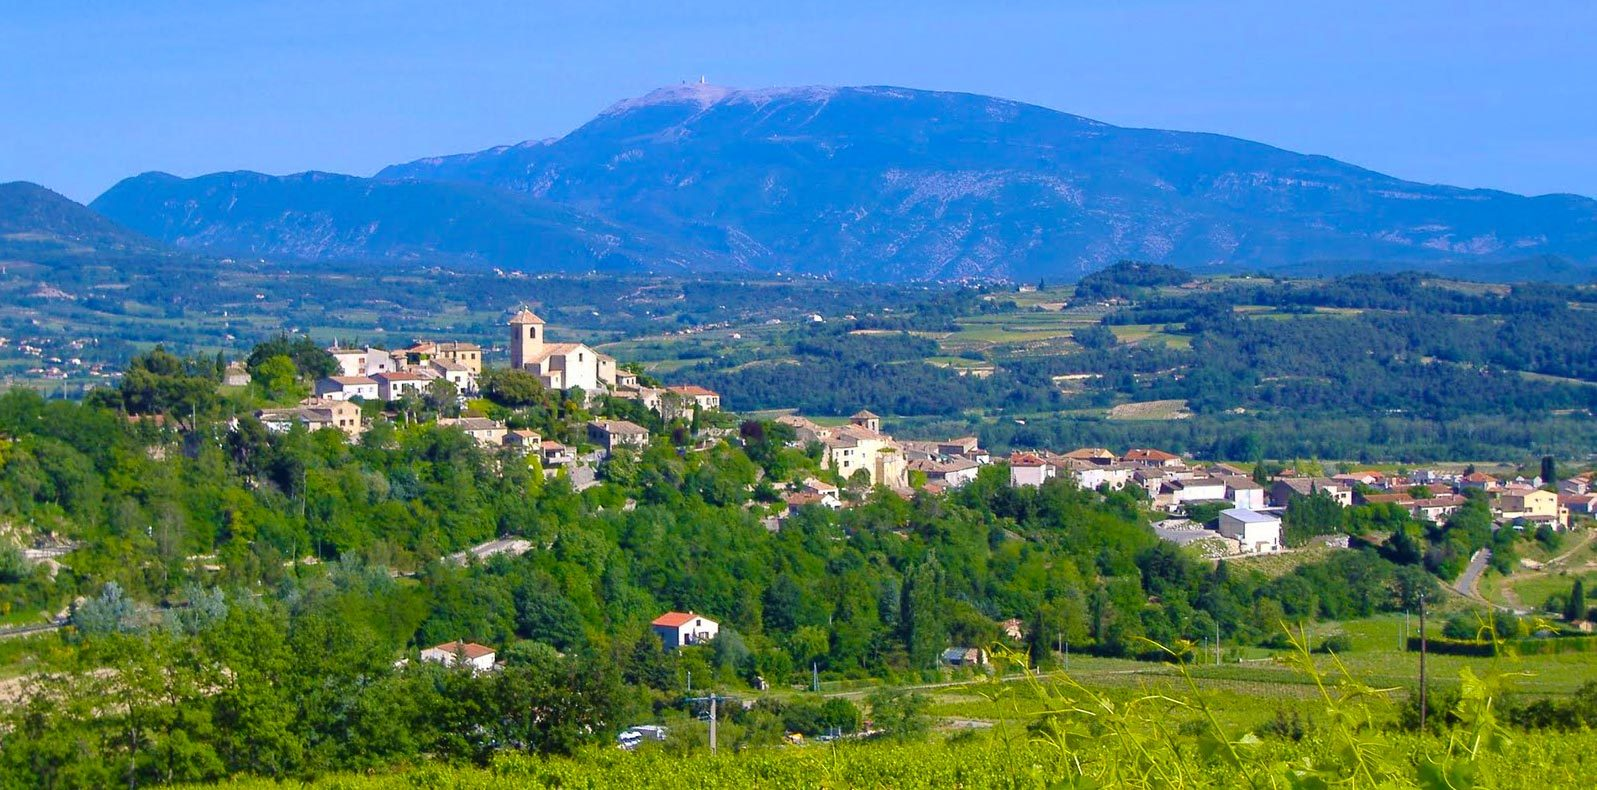 Vinsobres township with Mount Ventoux in the distance